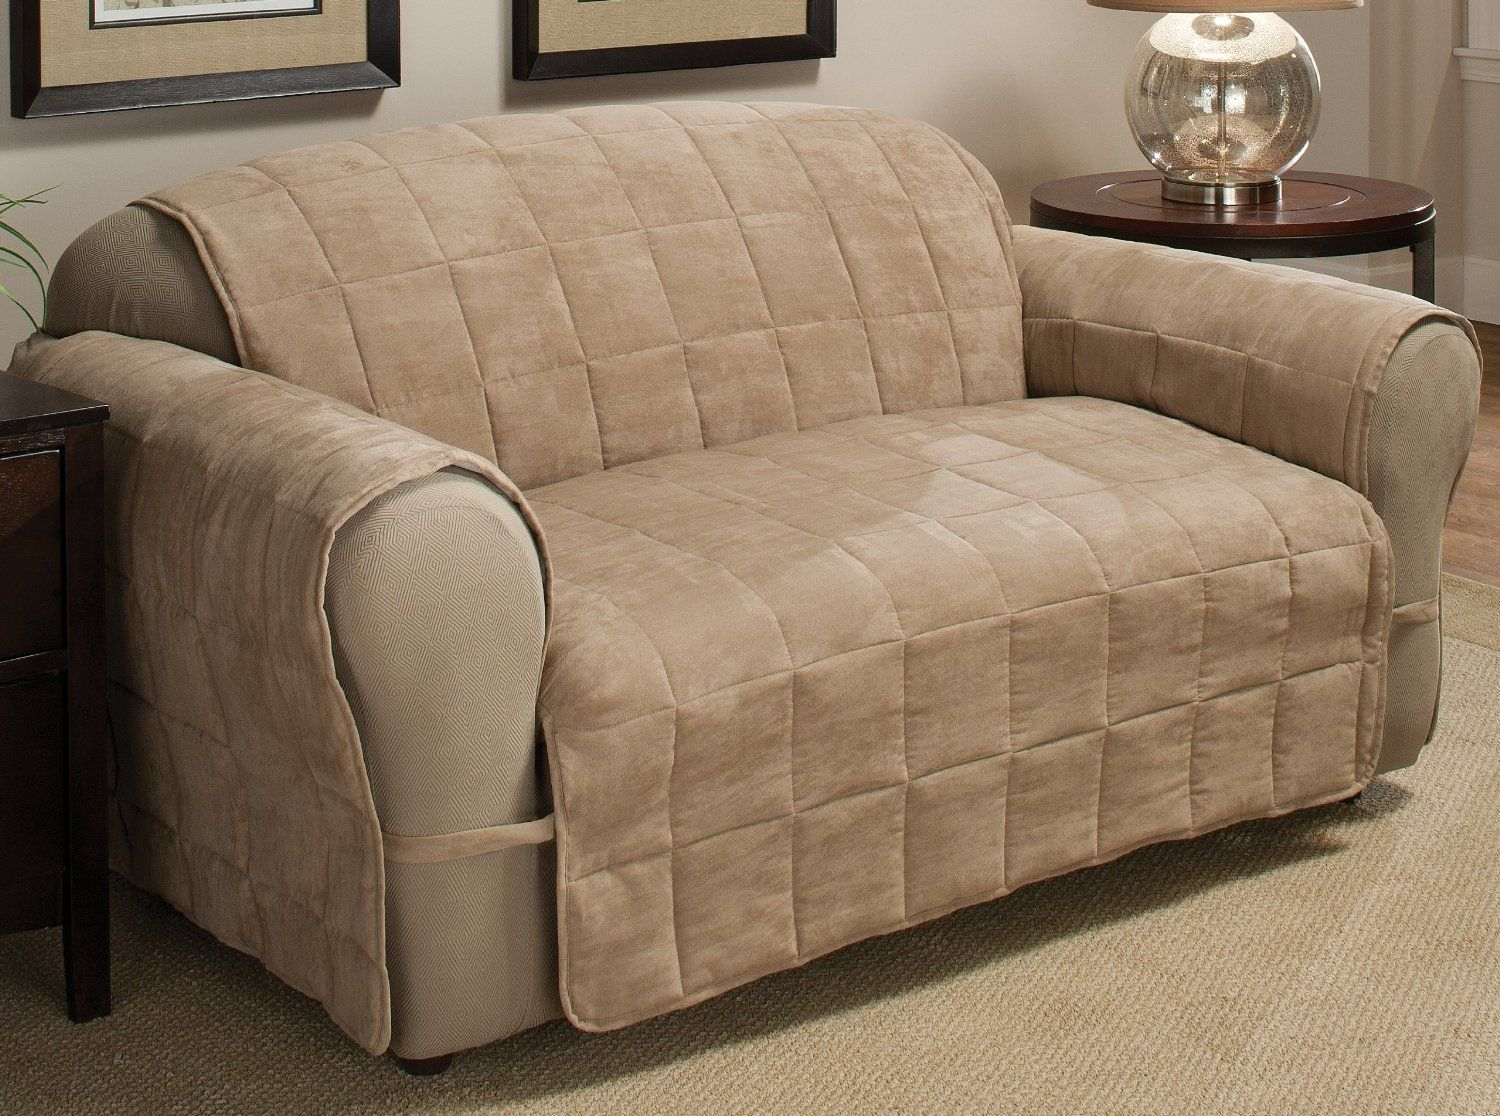 Pleasing 10 Best Sofa Cover For Leather Couch Elegant And Stunning Pabps2019 Chair Design Images Pabps2019Com